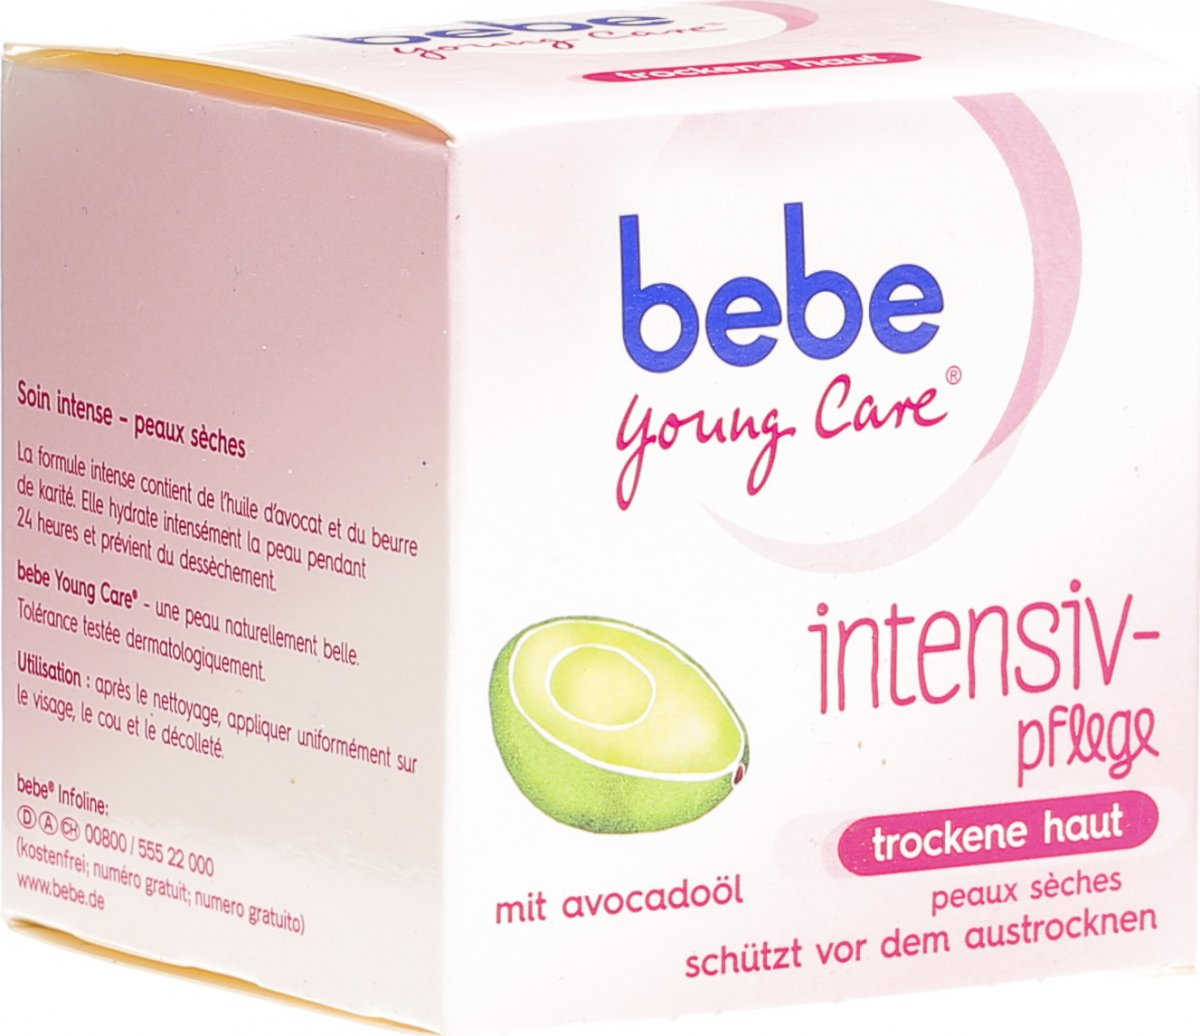 Bebe Produkte Bebe Young Care Intensive Creme Topf 50ml In Der Adler Apotheke